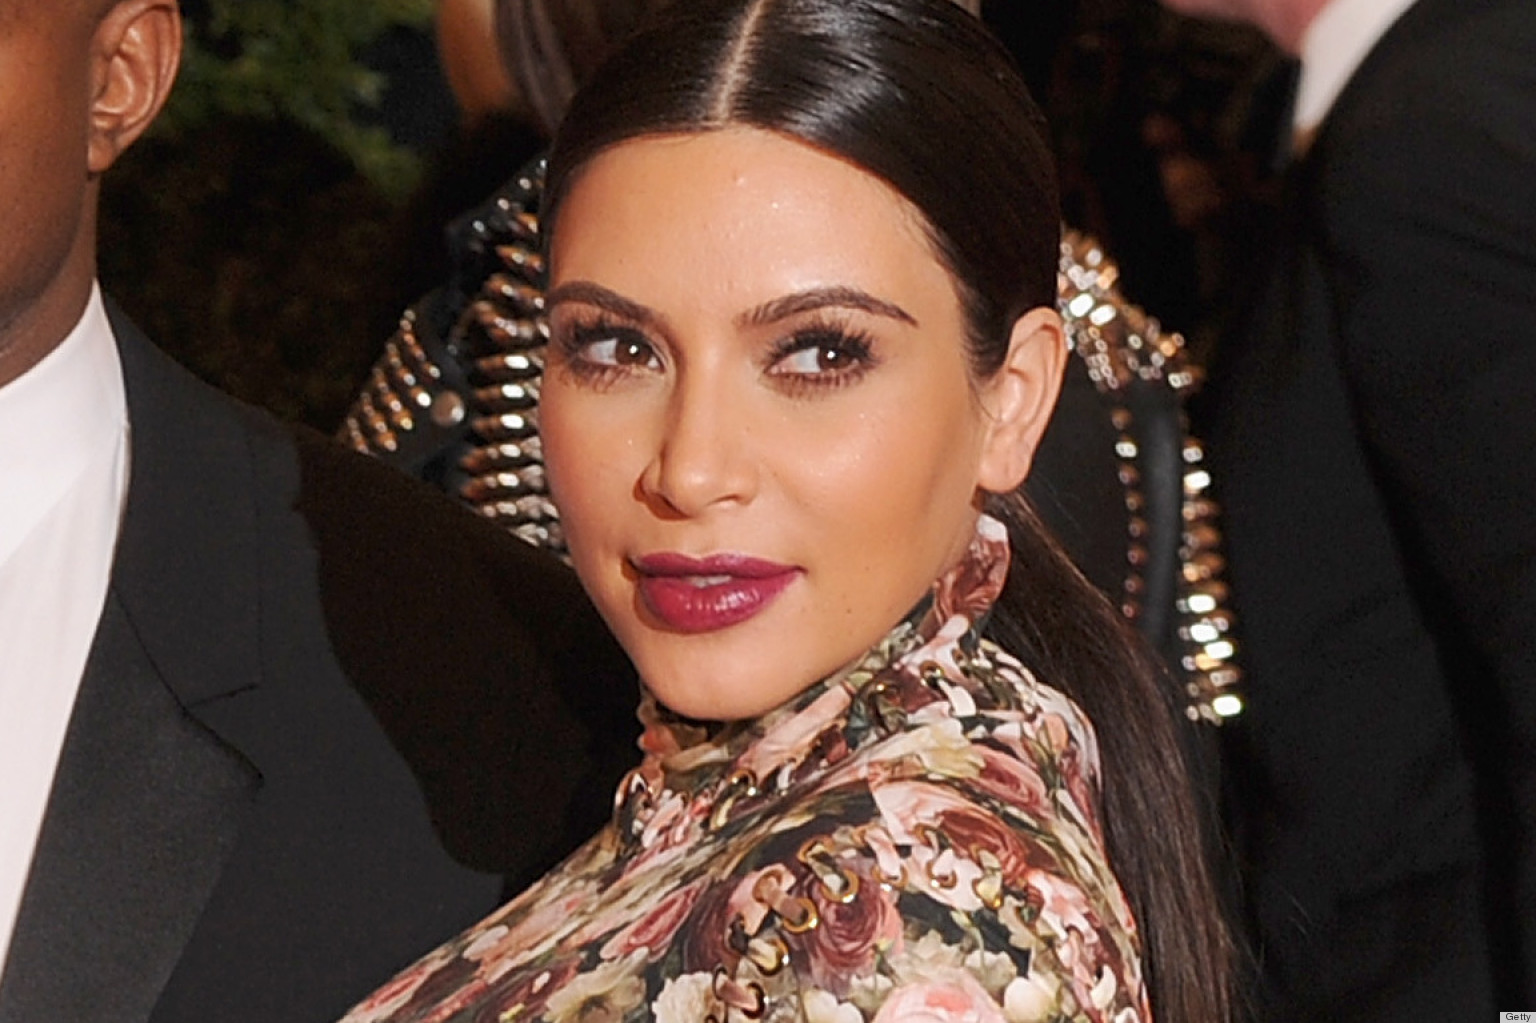 Riccardo Tisci Defends Kim Kardashian's Met Gala Dress